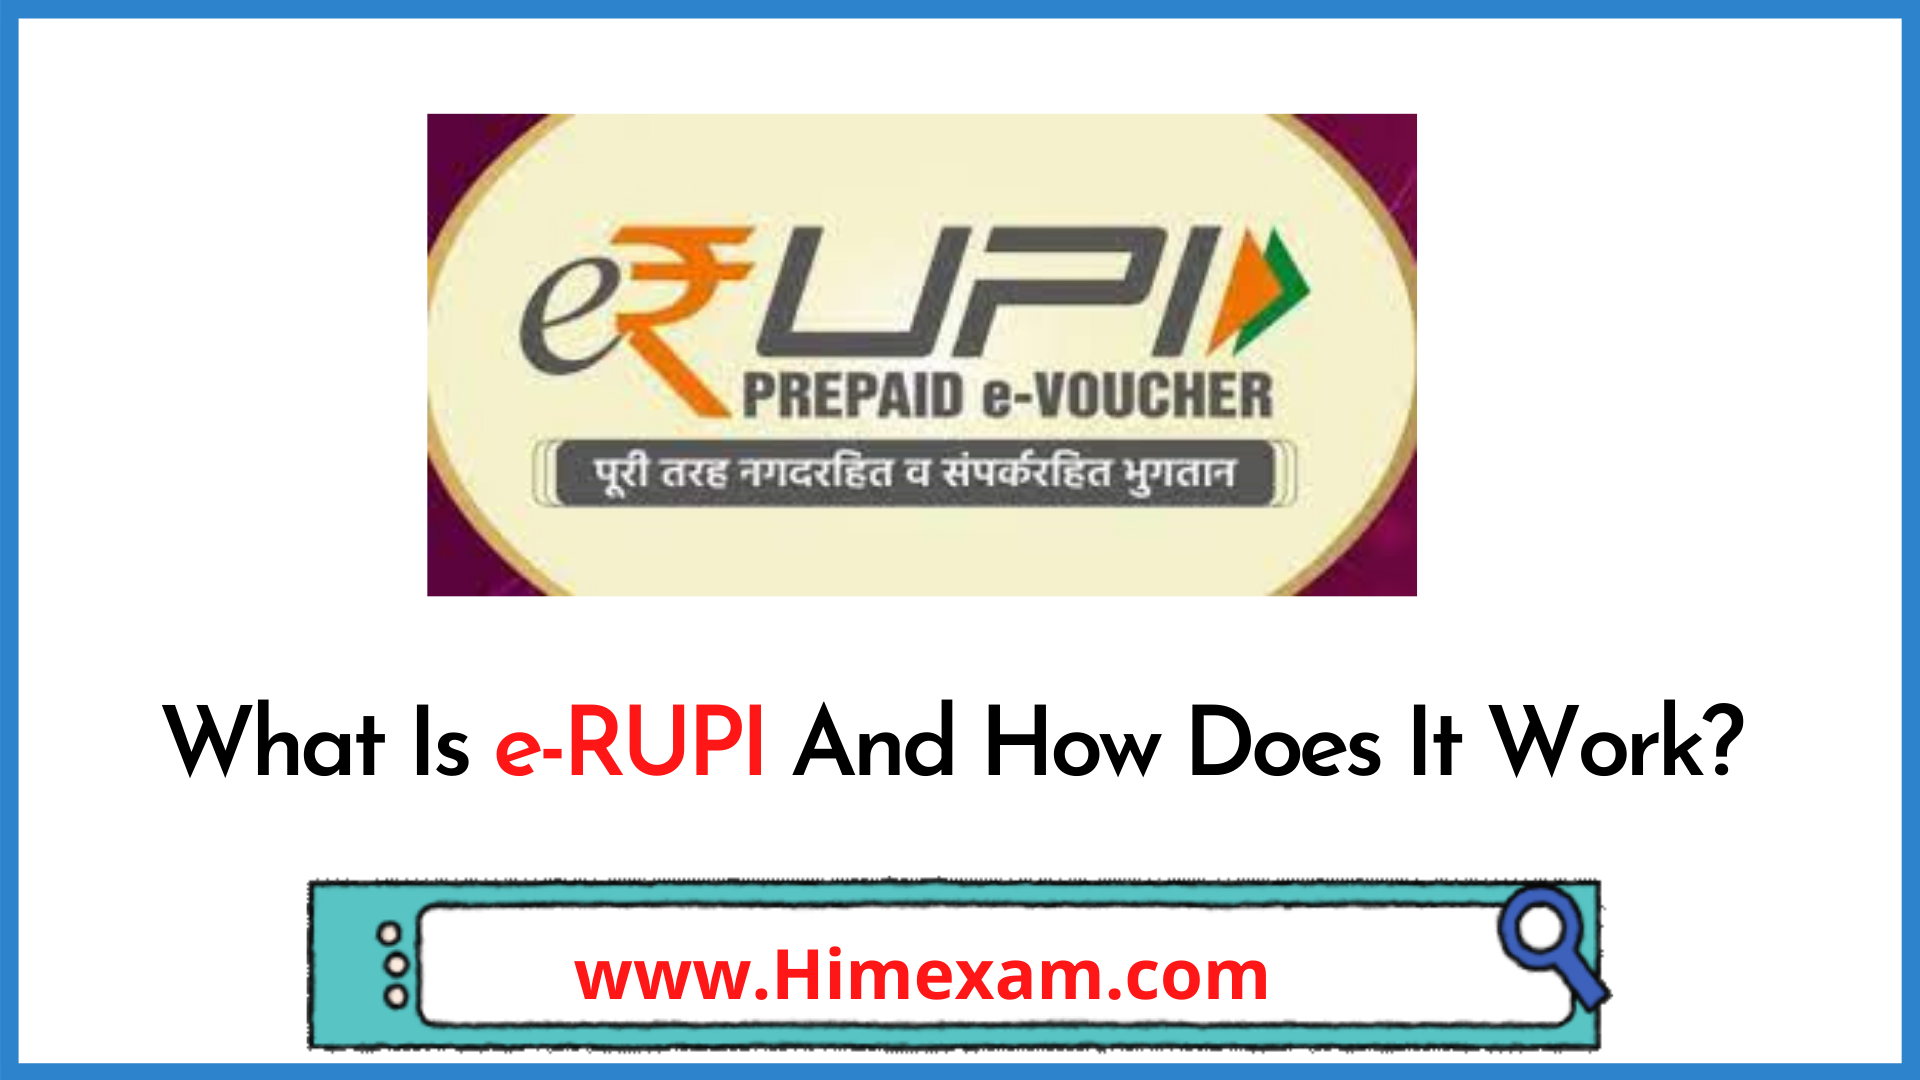 What Is e-RUPI And How Does It Work?